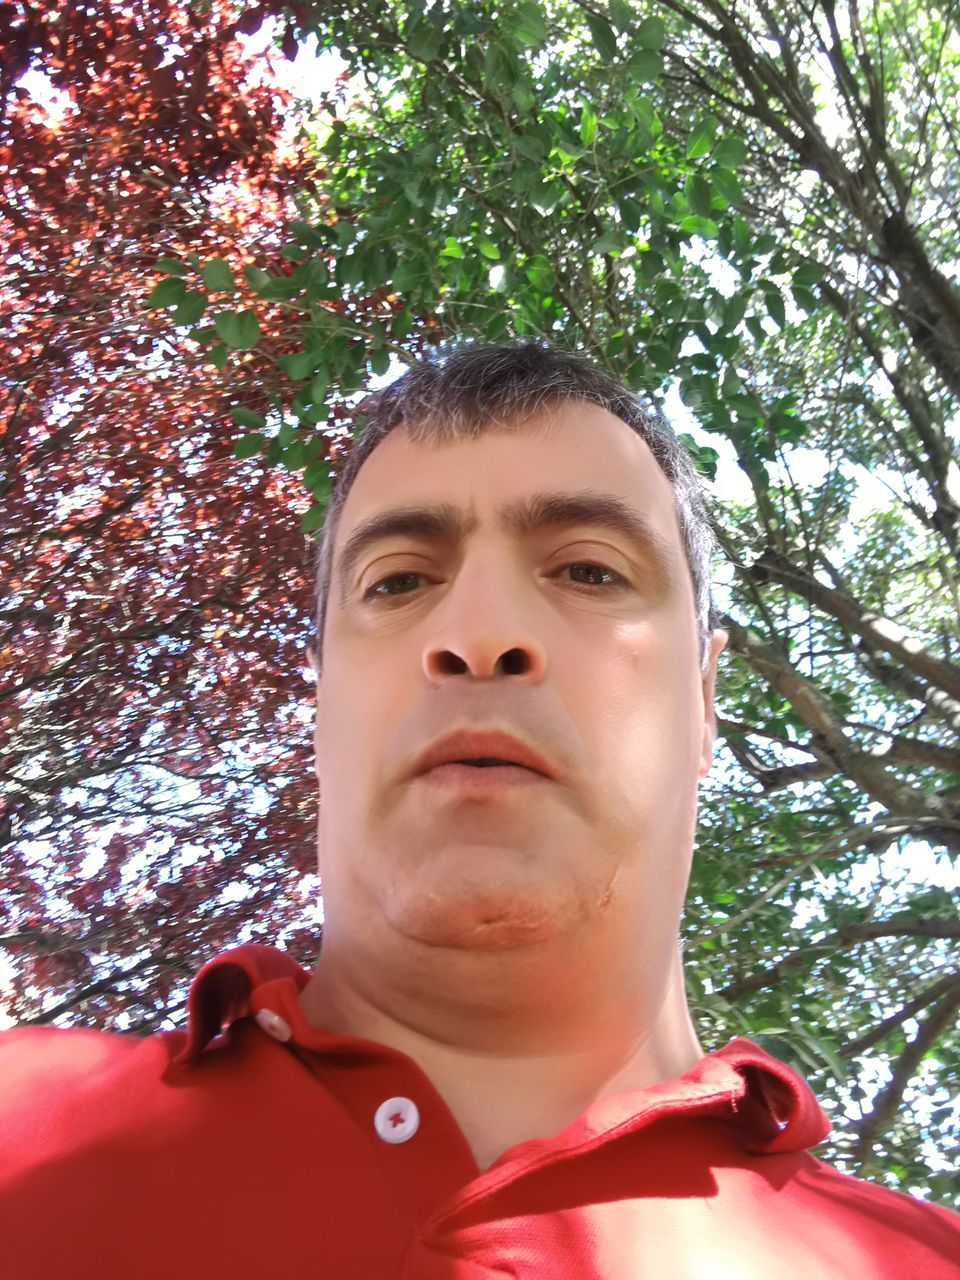 Low Angle Portrait Of Man Against Tree